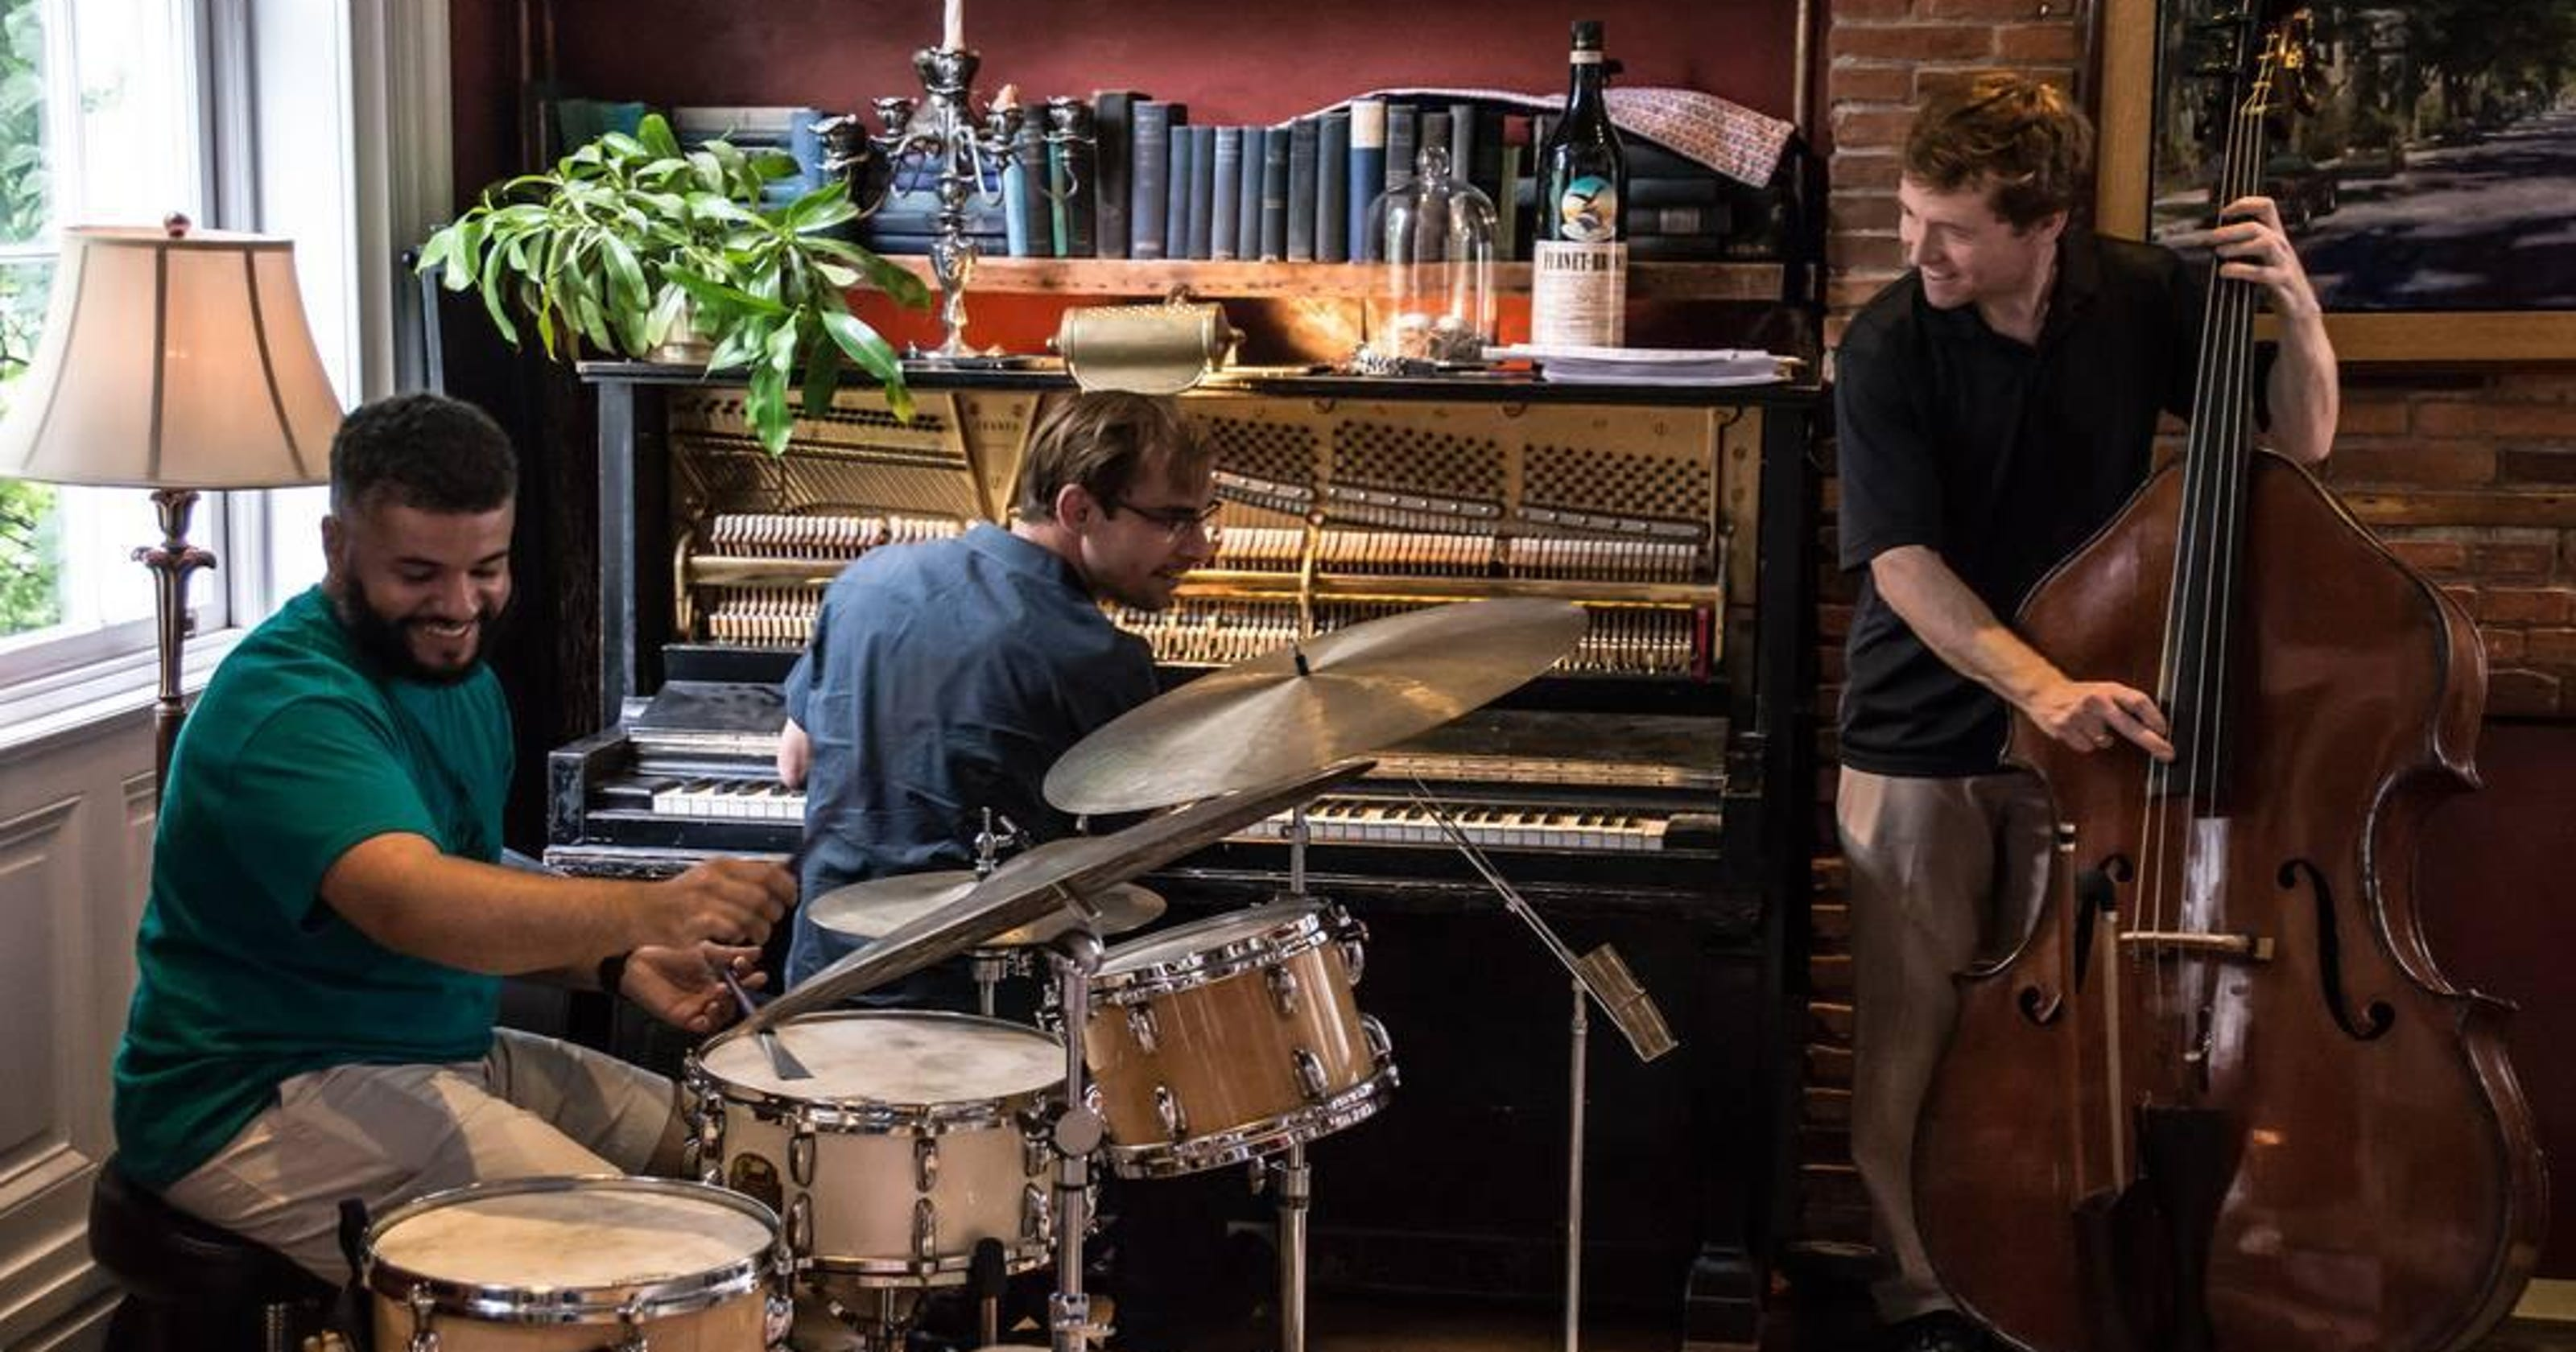 Jazz trio captures communal vibe on new album